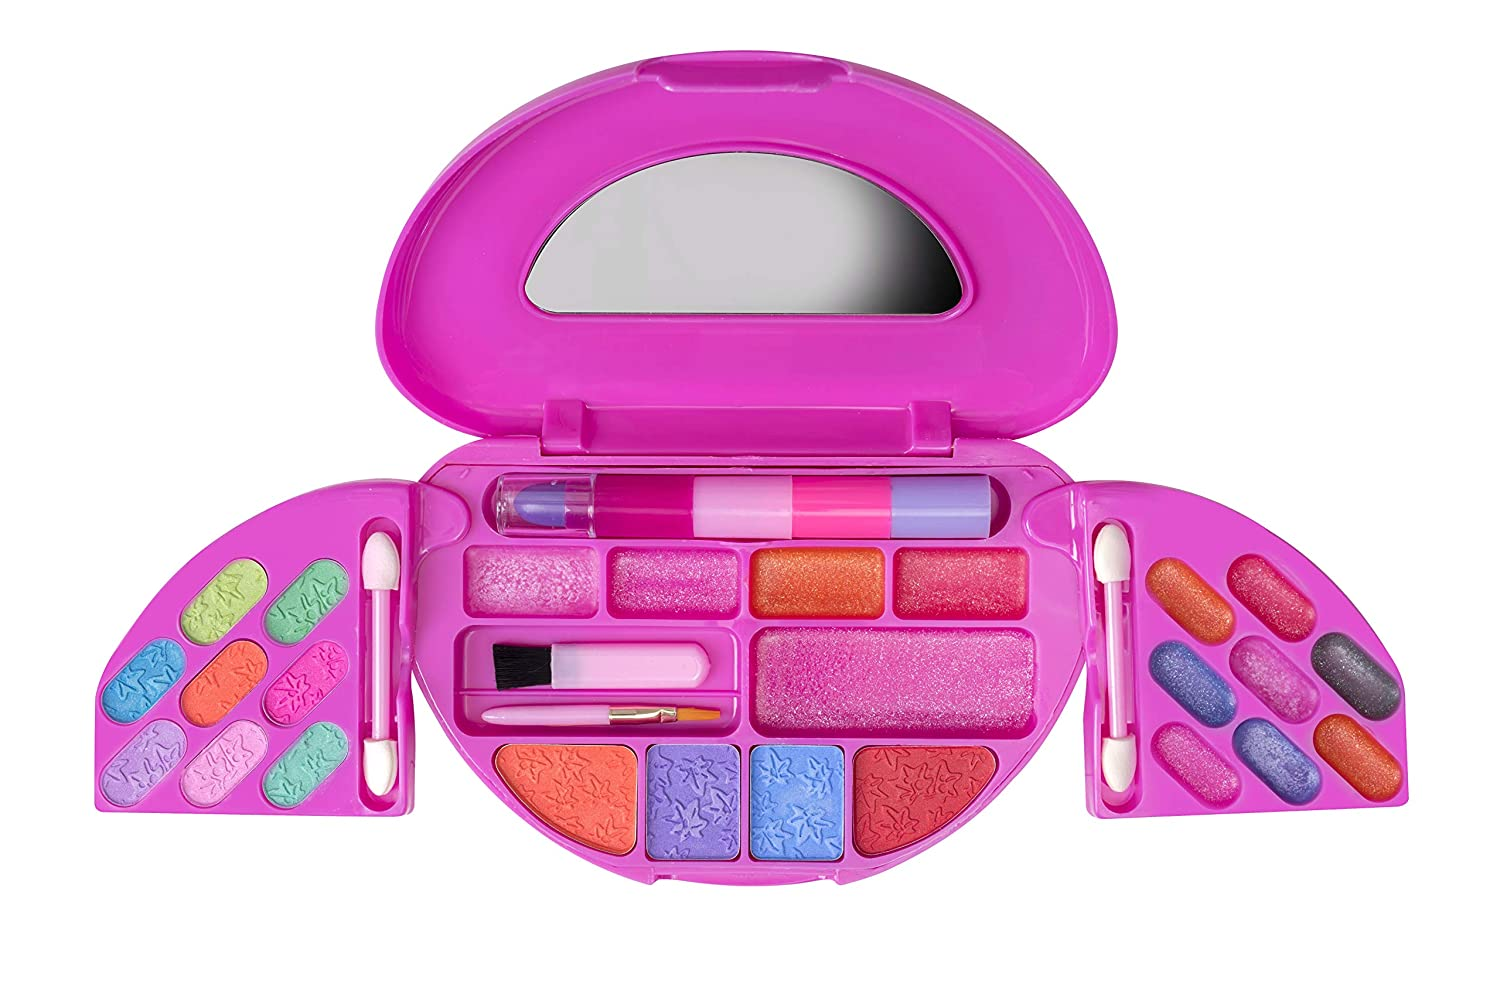 Playkidz: My First Princess Makeup Chest, Girl's All-in-One Travel Cosmetic and Real Makeup Palette with Mirror (Washable)